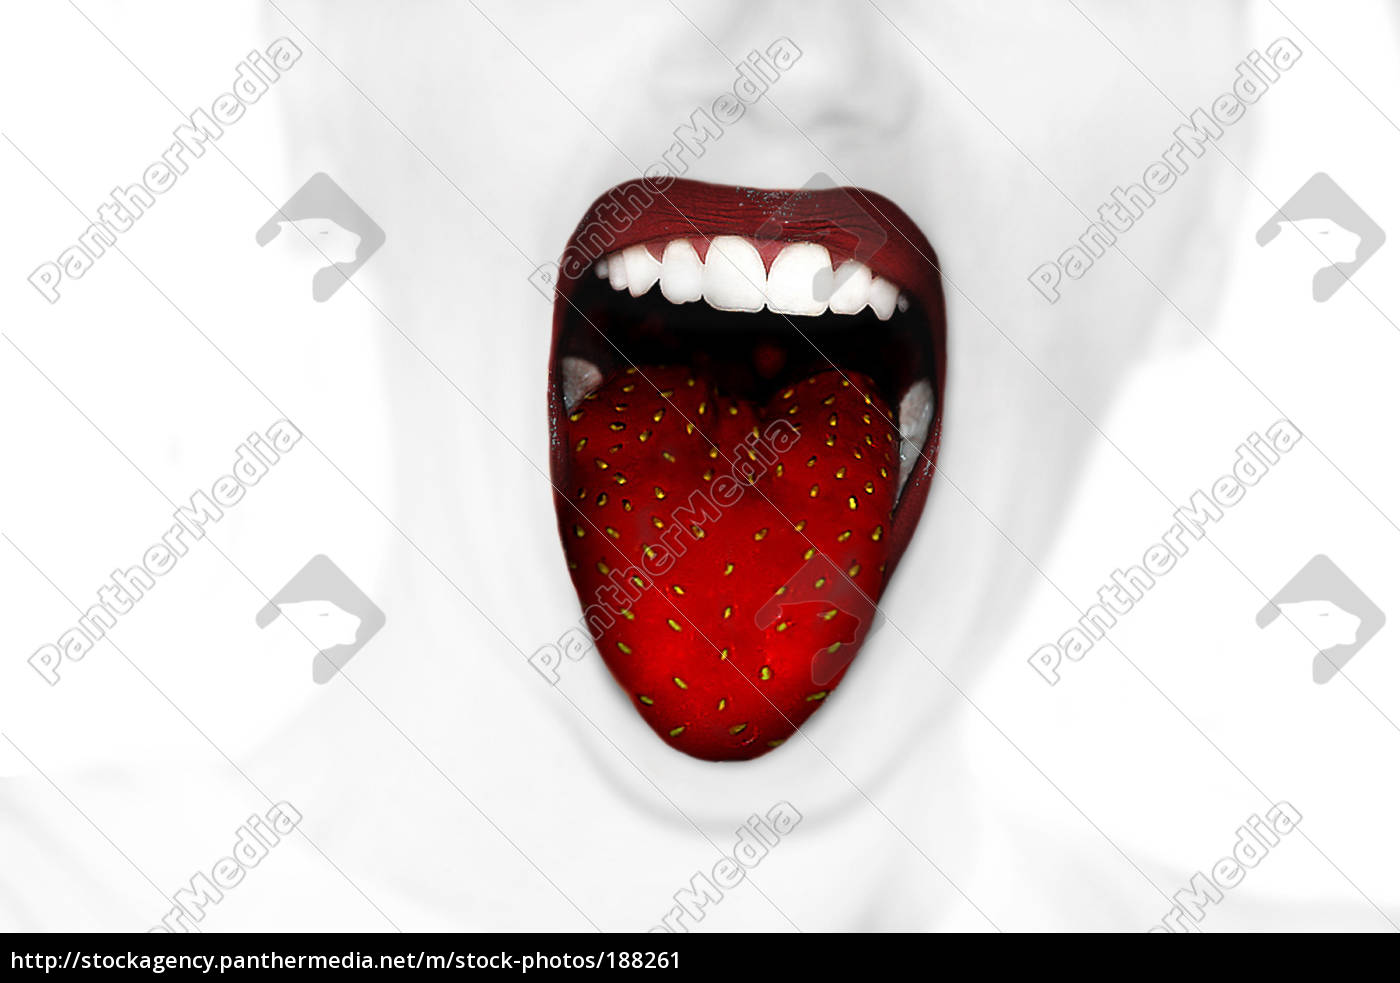 the, strawberry, face - 188261